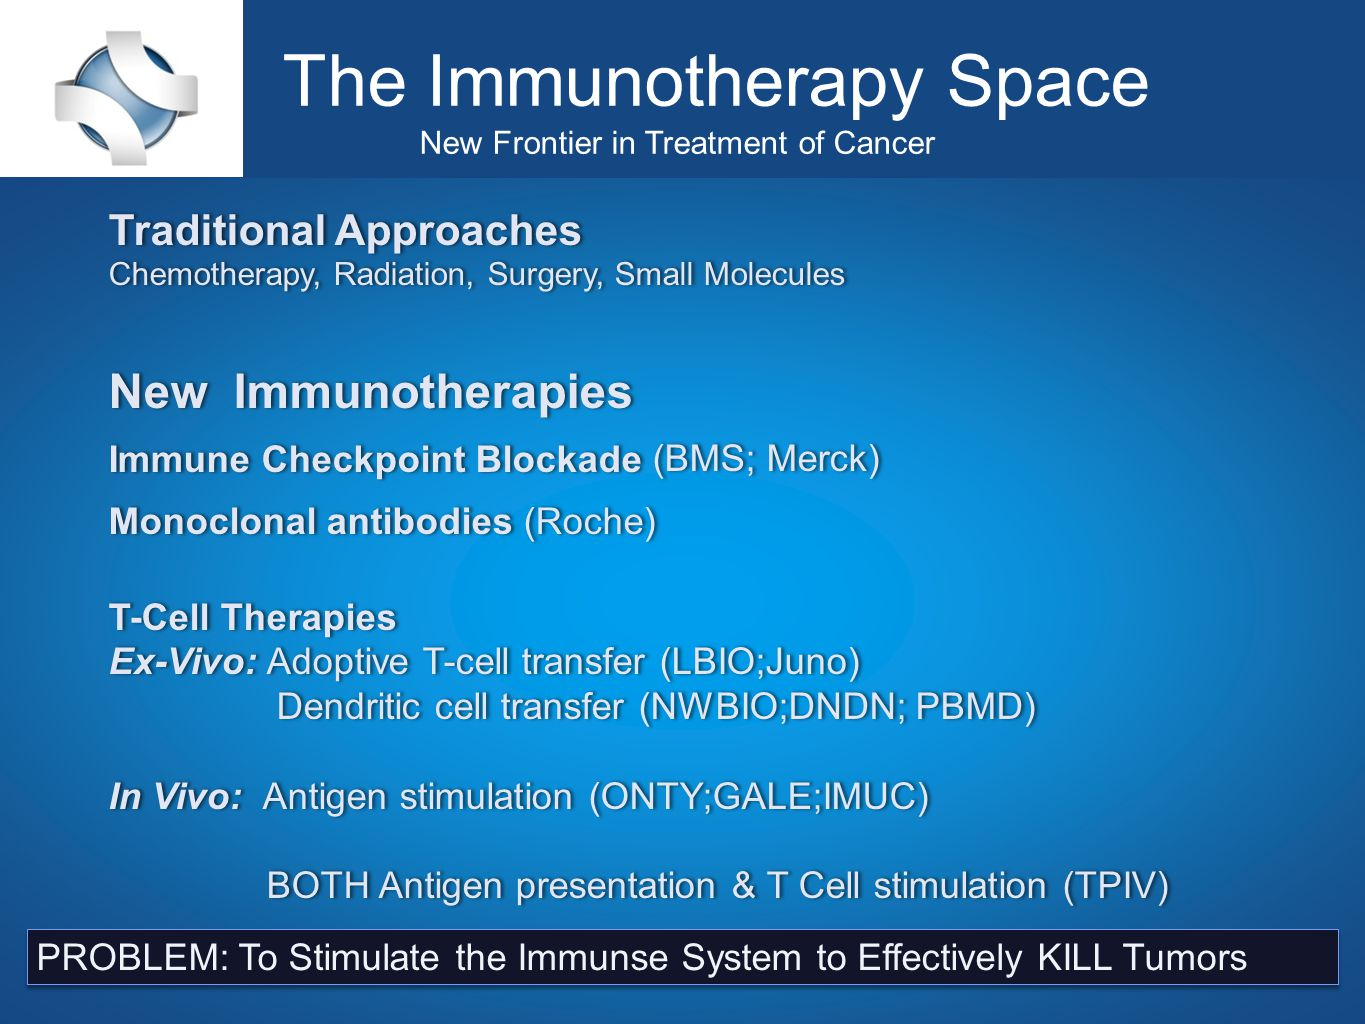 Corporate Presentation July 2012 The Immunotherapy Space New Frontier in Treatment of Cancer PROBLEM: To Stimulate the Immunse System to Effectively KILL Tumors Traditional Approaches Chemotherapy, Radiation, Surgery, Small Molecules New Immunotherapies Immune Checkpoint Blockade (BMS; Merck) Monoclonal antibodies (Roche) T-Cell Therapies Ex-Vivo: Adoptive T-cell transfer (LBIO;Juno) Dendritic cell transfer (NWBIO;DNDN; PBMD) In Vivo: Antigen stimulation (ONTY;GALE;IMUC) BOTH Antigen presentation & T Cell stimulation (TPIV) Traditional Approaches Chemotherapy, Radiation, Surgery, Small Molecules New Immunotherapies Immune Checkpoint Blockade (BMS; Merck) Monoclonal antibodies (Roche) T-Cell Therapies Ex-Vivo: Adoptive T-cell transfer (LBIO;Juno) Dendritic cell transfer (NWBIO;DNDN; PBMD) In Vivo: Antigen stimulation (ONTY;GALE;IMUC) BOTH Antigen presentation & T Cell stimulation (TPIV)